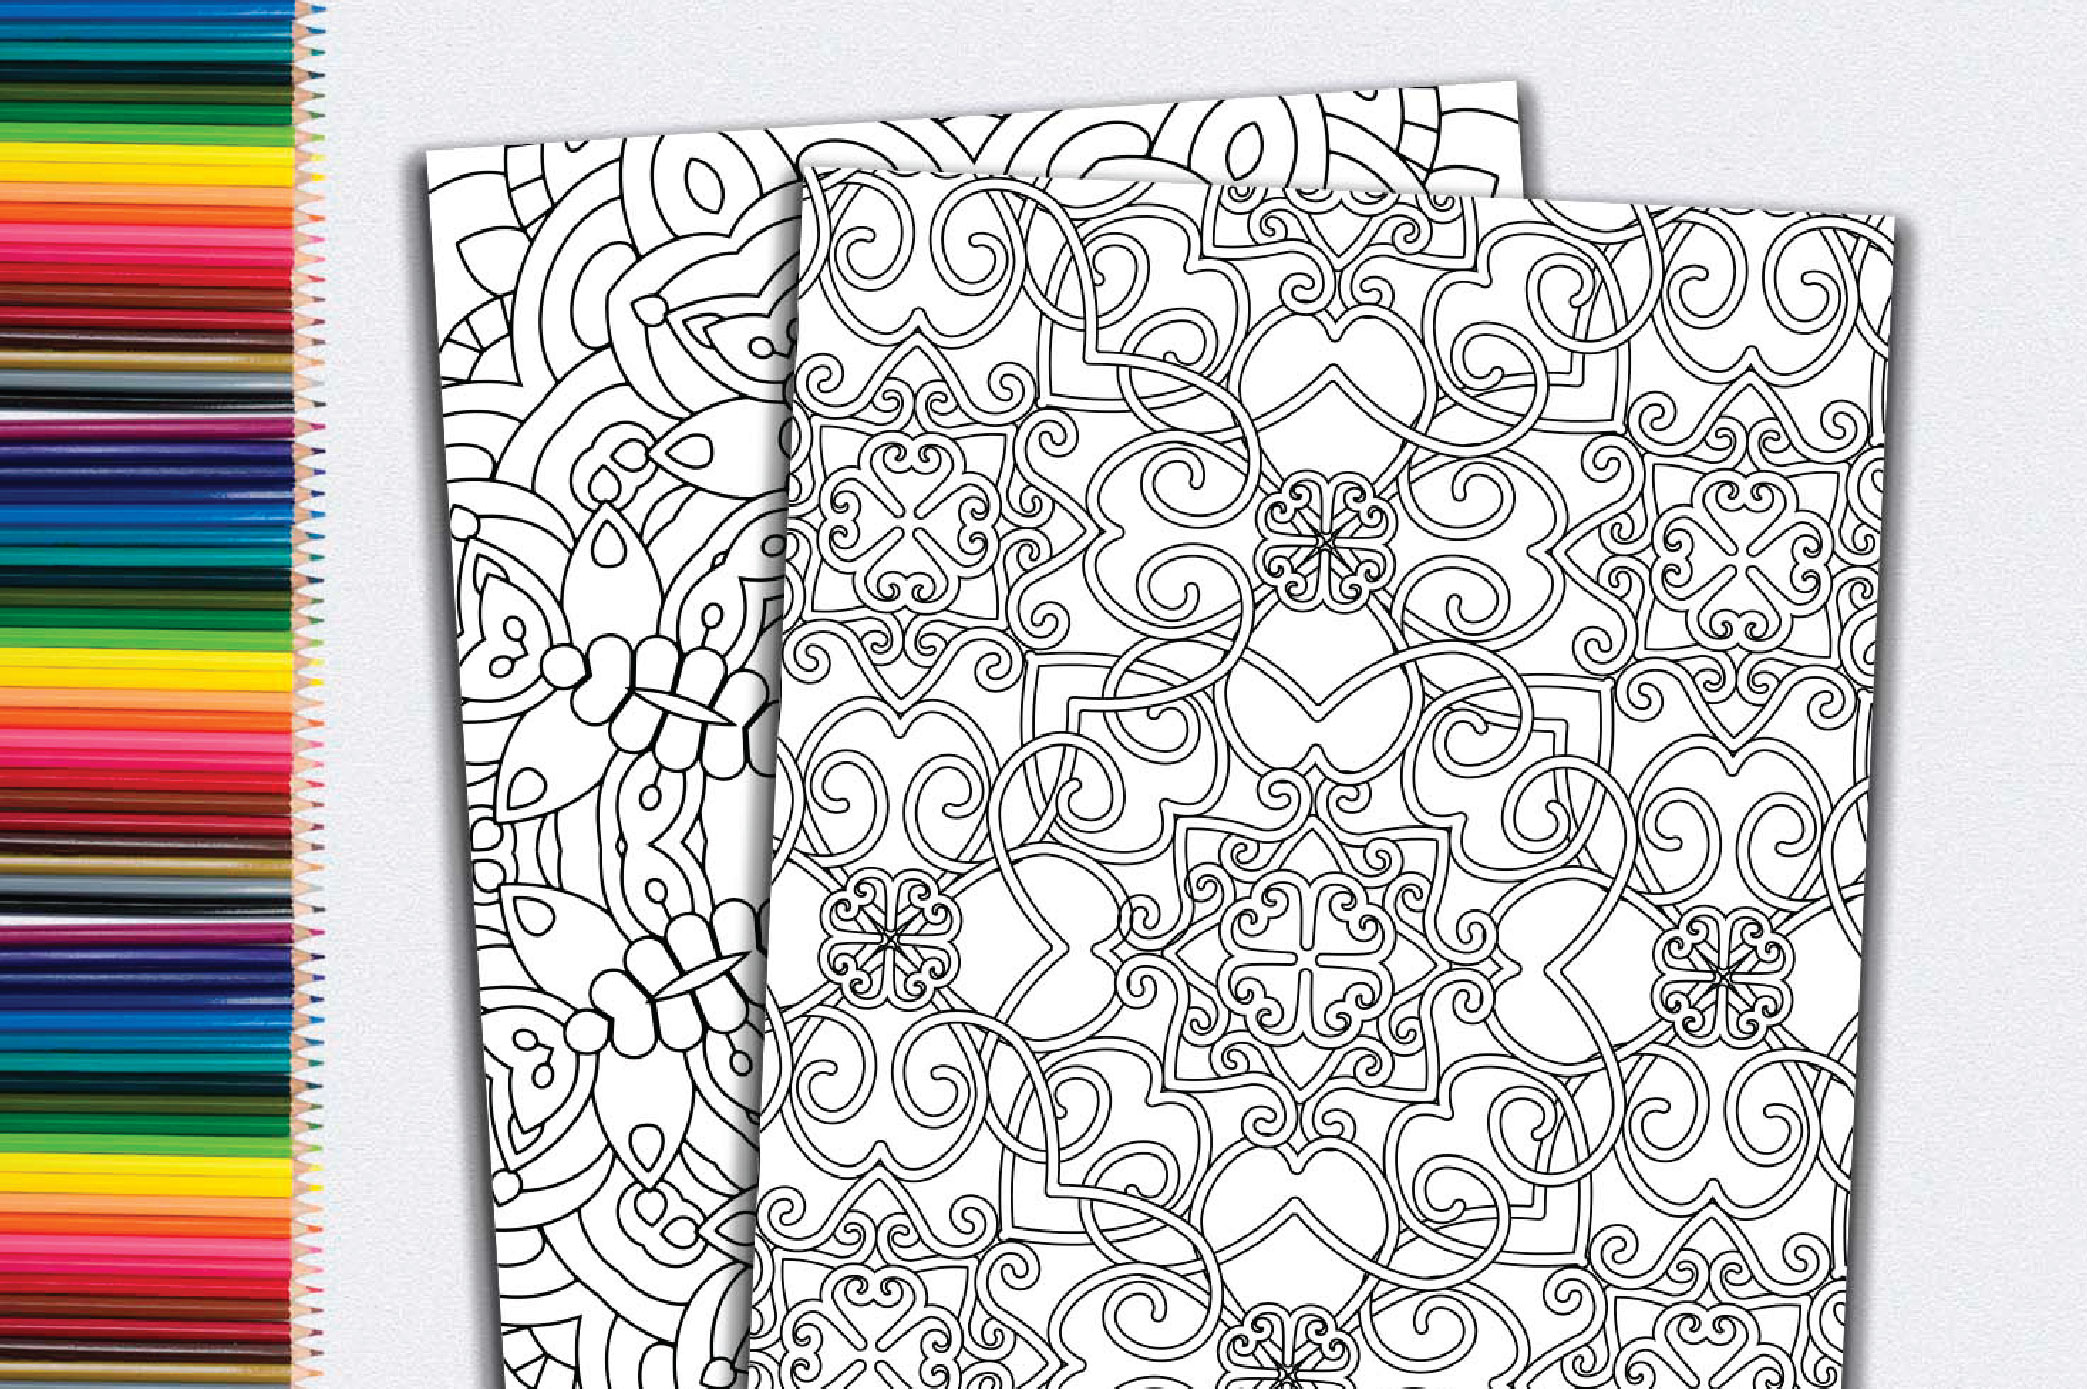 50 Geometric Coloring Pages example image 12